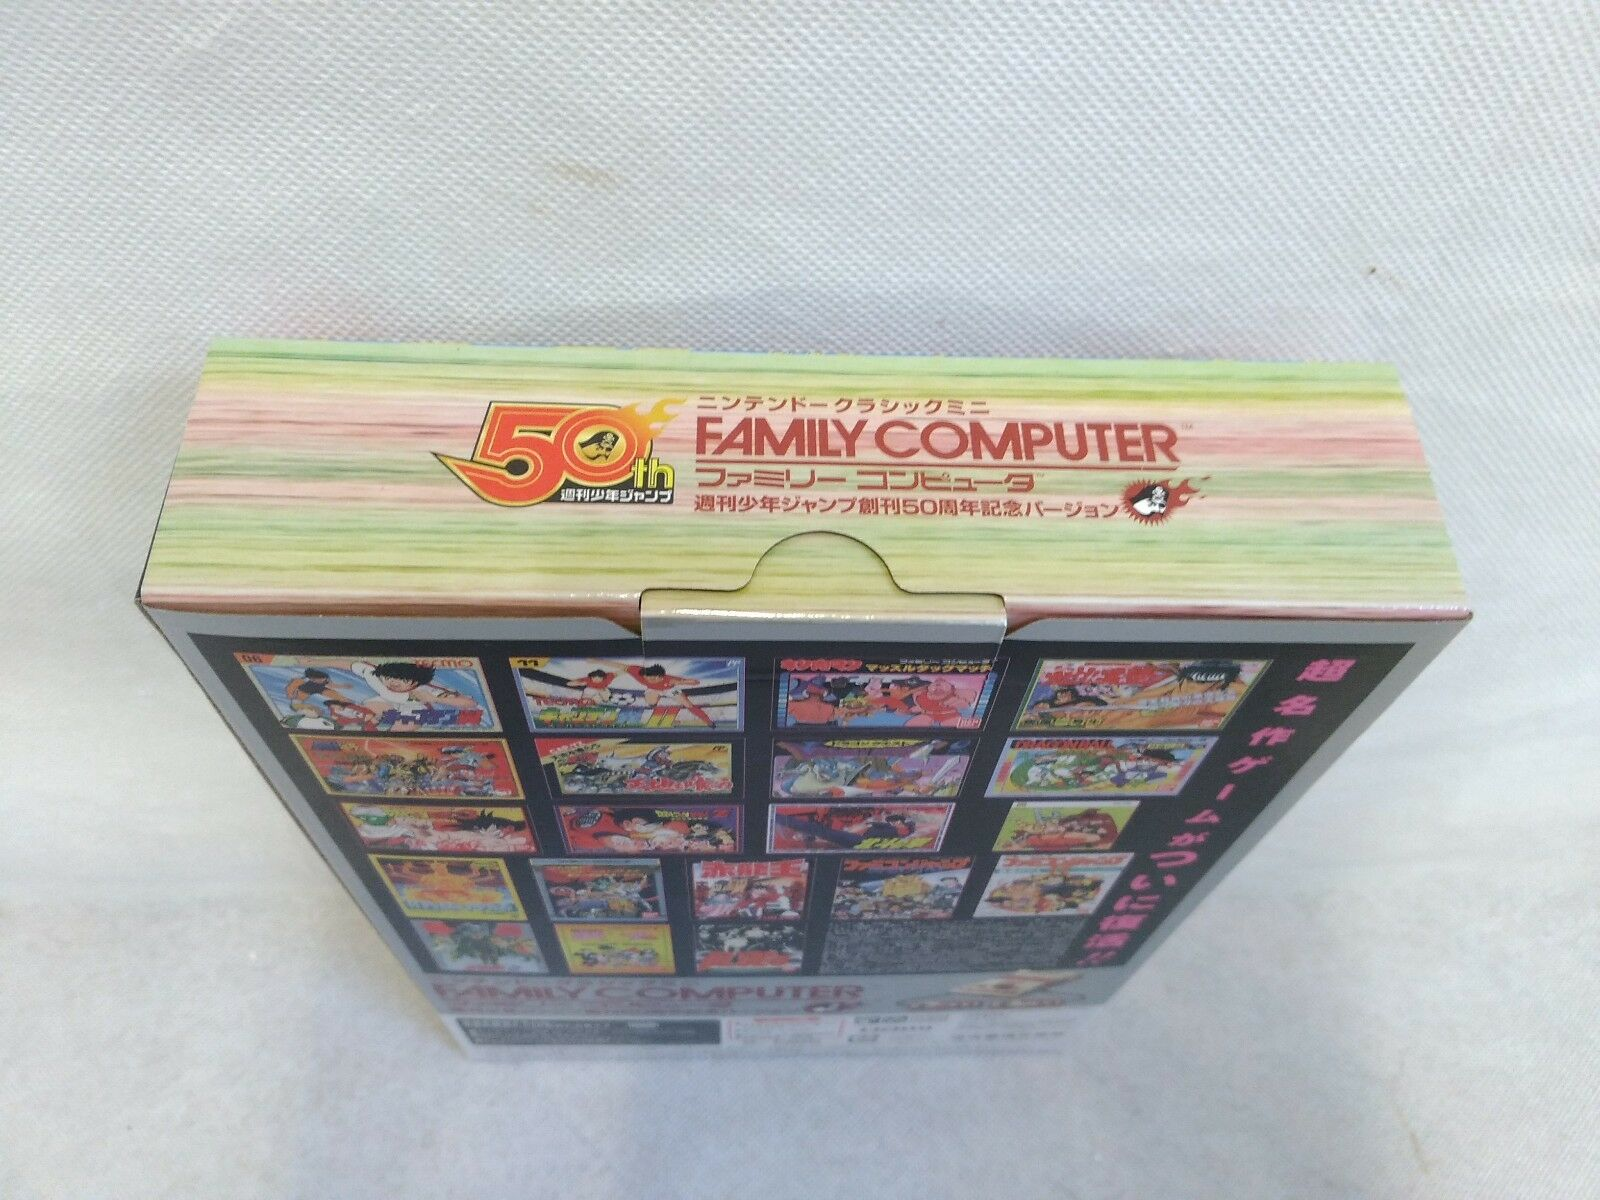 Купить Nintendo Classic Mini Family Computer Shonen Jump 50th Anniversary Version Gold